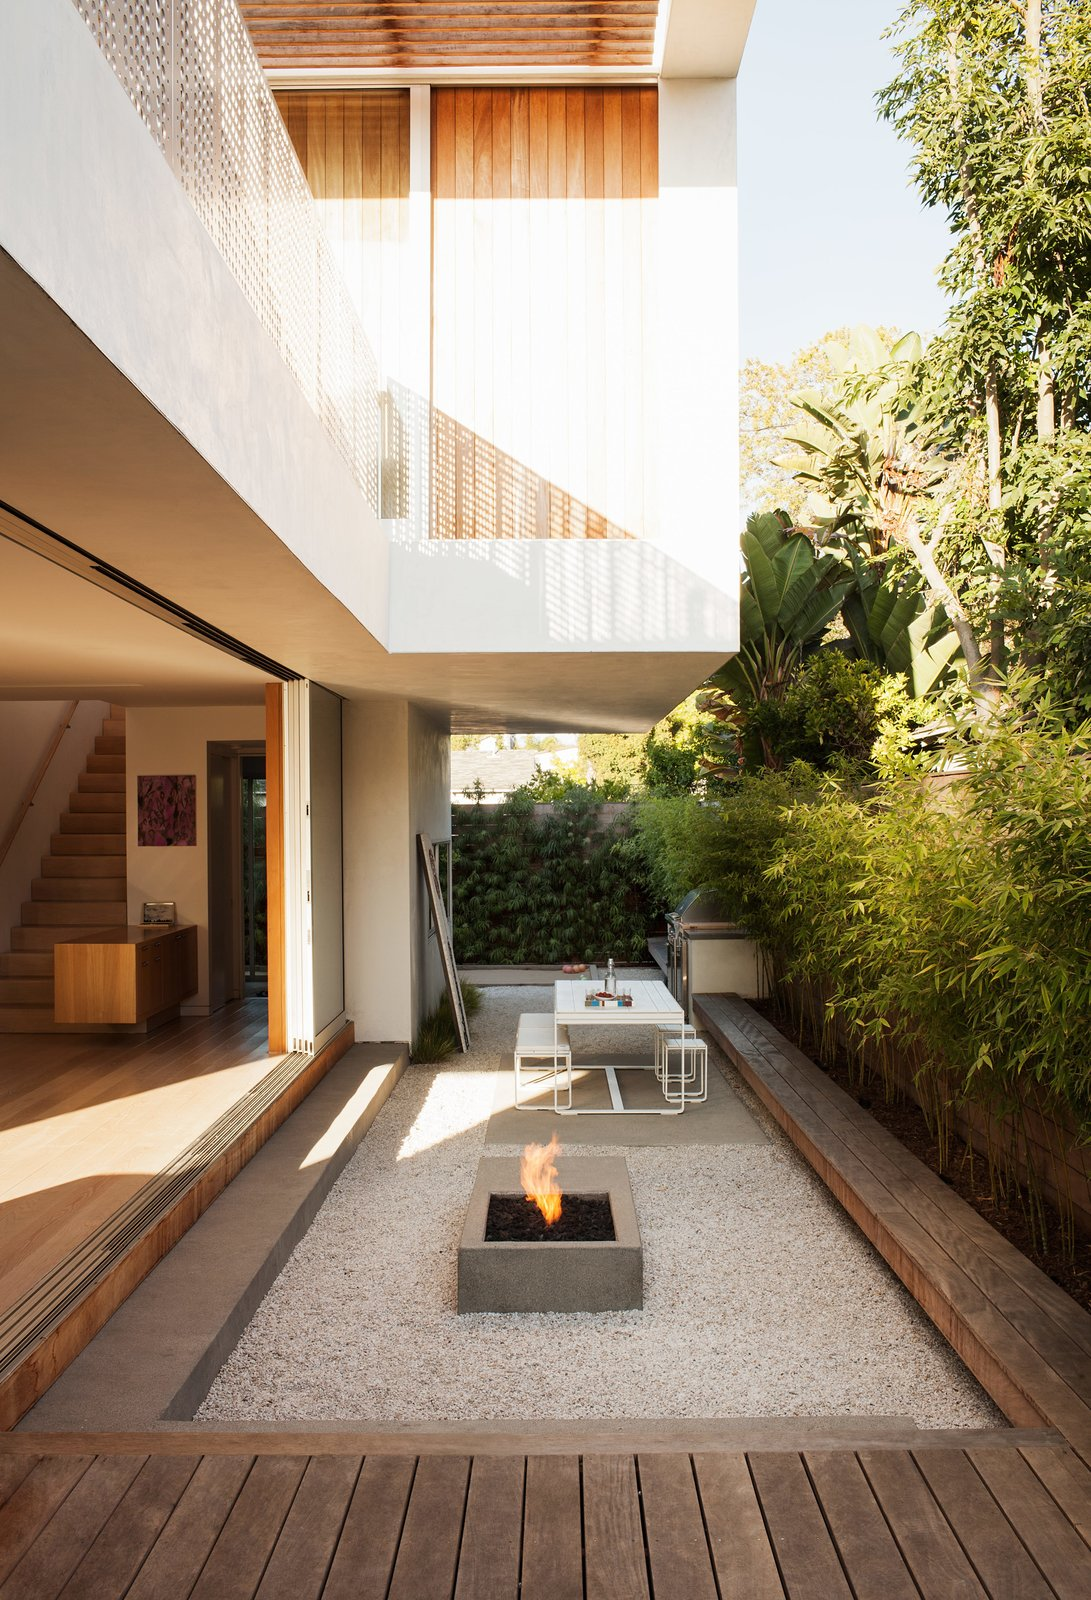 The outdoor living room serves as both a counterpoint and extension of the interior, with amenities that include a Gandia Blasco dining table and bench, a Lynx grill, and a custom concrete fire pit designed by Kathleen Ferguson; it sits atop a bed of crushed white rock. A built-in bench runs along the length of the courtyard. Tagged: Outdoor, Stone Patio, Porch, Deck, Wood Patio, Porch, Deck, and Back Yard.  Photo 11 of 13 in Get Your Tongs Ready For the Long Weekend With 13 Outdoor Spaces Made For Grilling from Amid a Hotbed of Architecture, This Home Holds Its Own